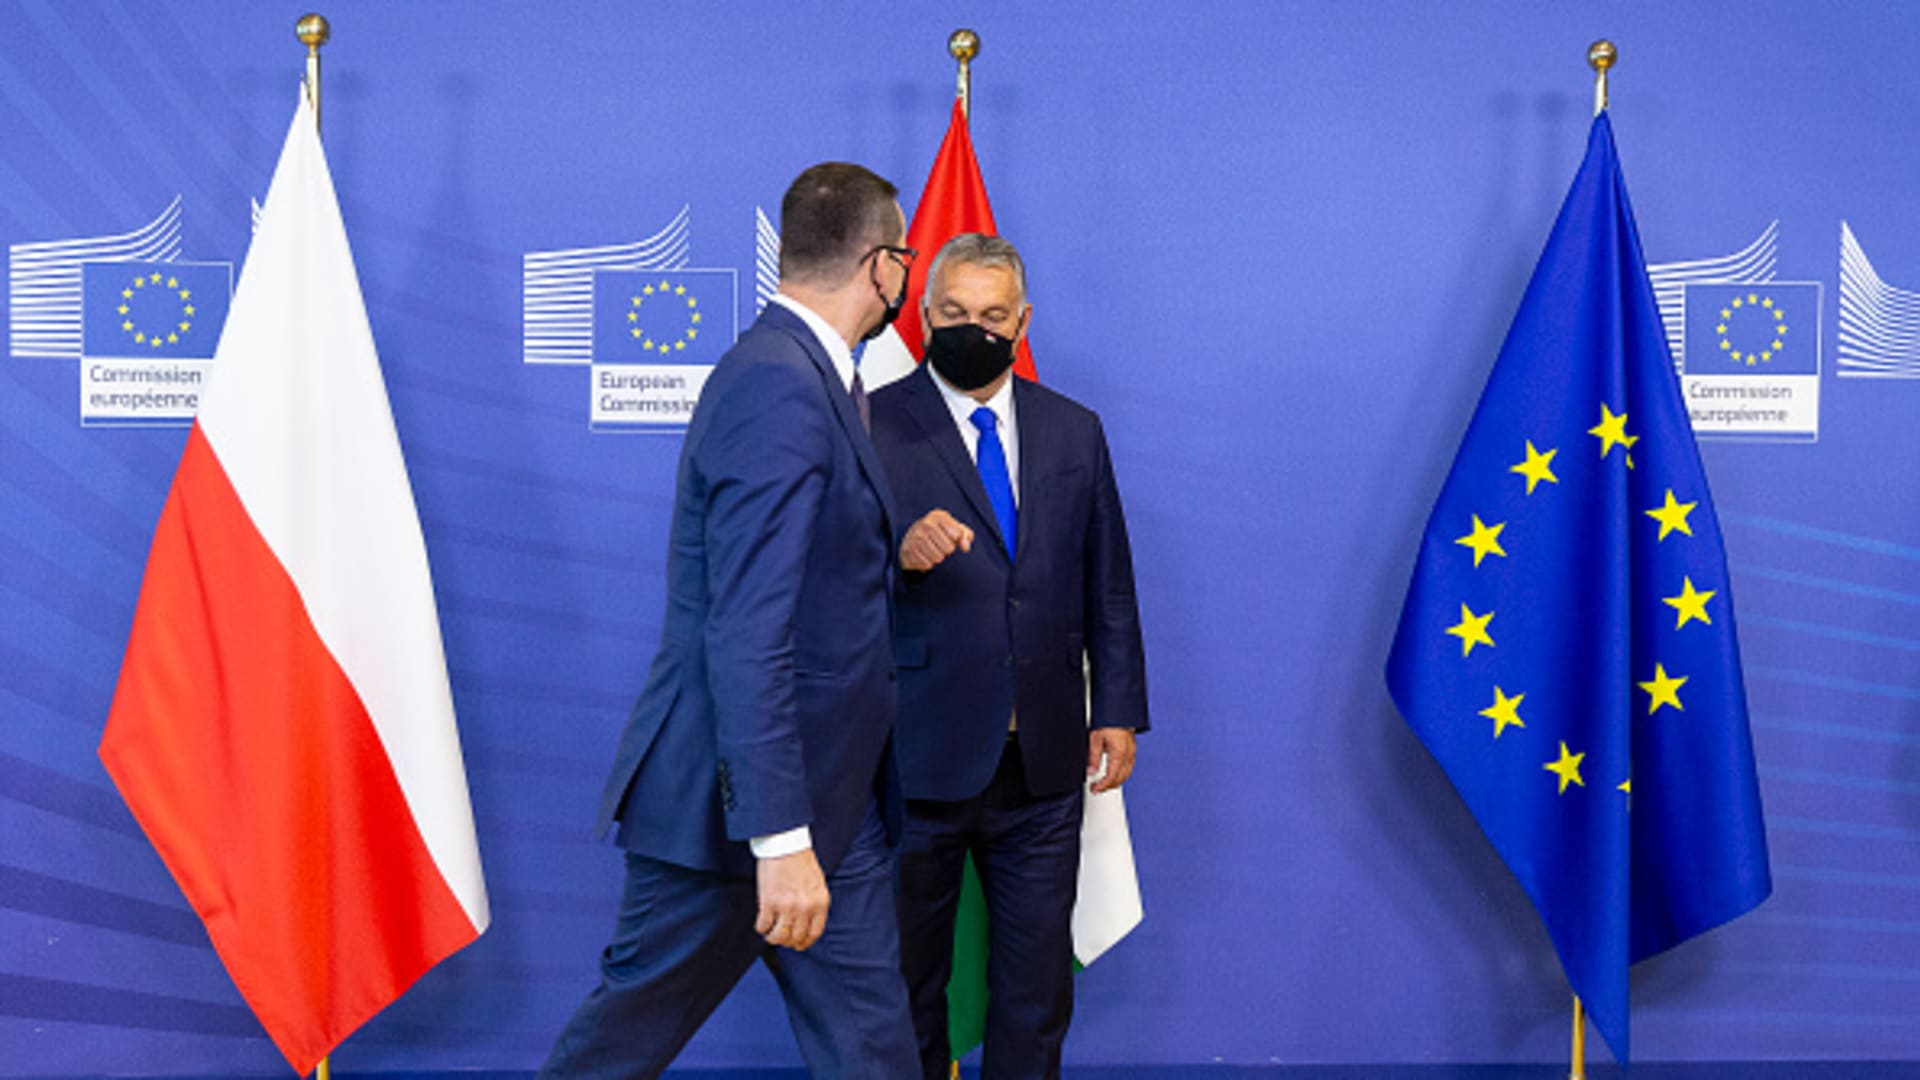 Polish Prime Minister Mateusz Morawiecki (L) and the Hungarian Prime Minister Viktor Mihaly Orban (R) attend a Visegrad Group meeting in the Berlaymont, the EU Commission headquarter on September 24, 2020, in Brussels, Belgium.